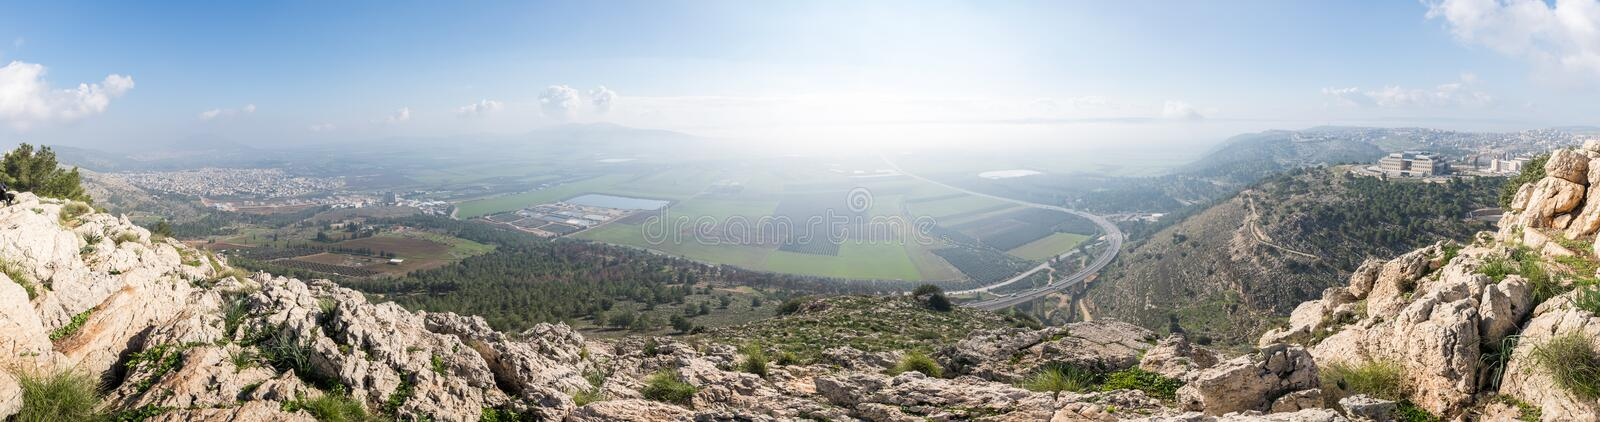 View of the sunrise from the Mount Precipice near Nazareth on the adjacent valley stock photography